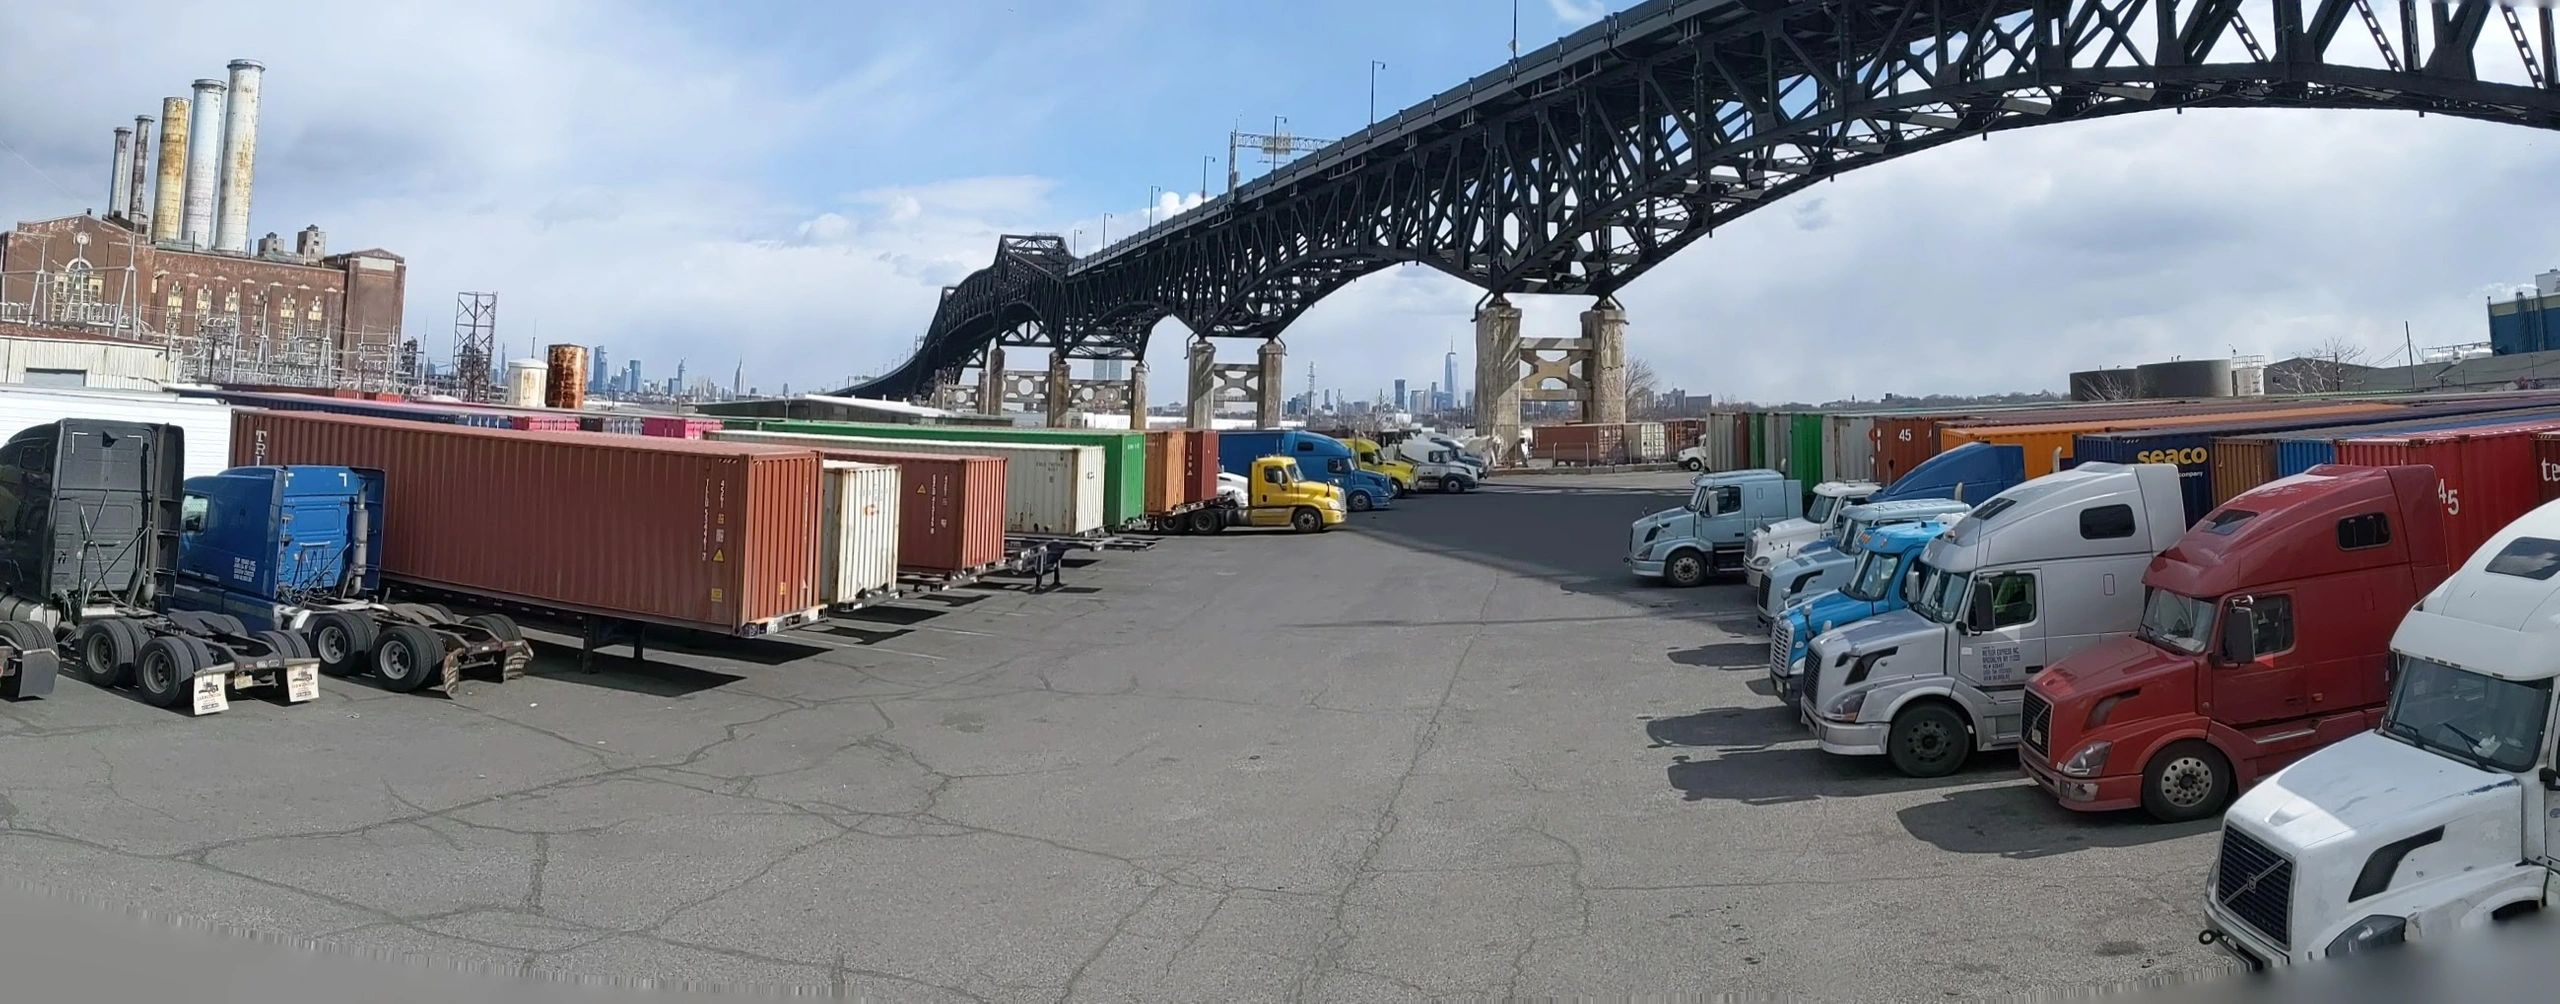 Trucking Services in NJ/NY Ports & Terminals